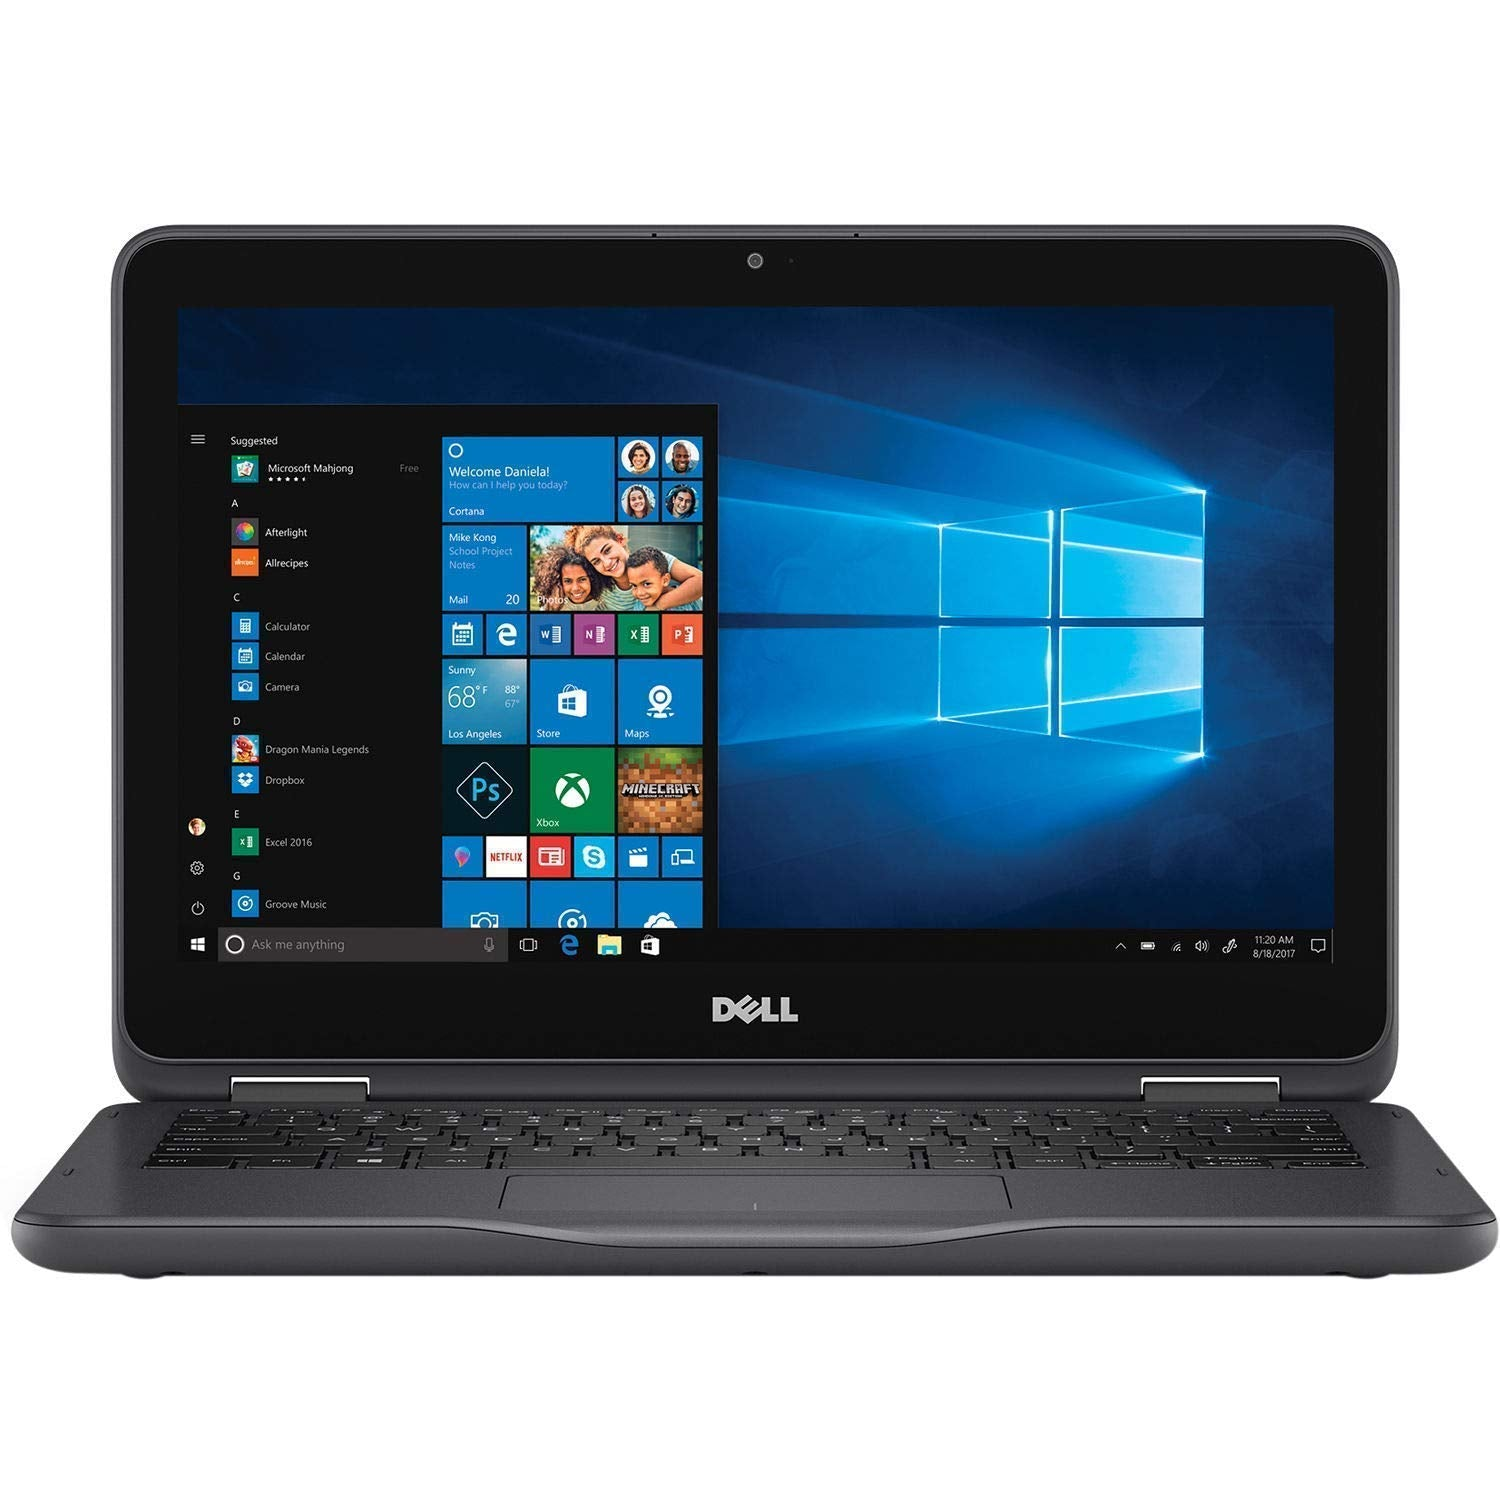 "Dell Inspiron 11.6 Laptop, Dell 11 3000 11.6"" HD Touchscreen 2-in-1 Premium 2019, AMD A9-9420e, 4GB DDR4, 500GB HDD, HDMI BT 4.0 WiFi USB 3.1 HD Webcam MaxxAudio Win 10"